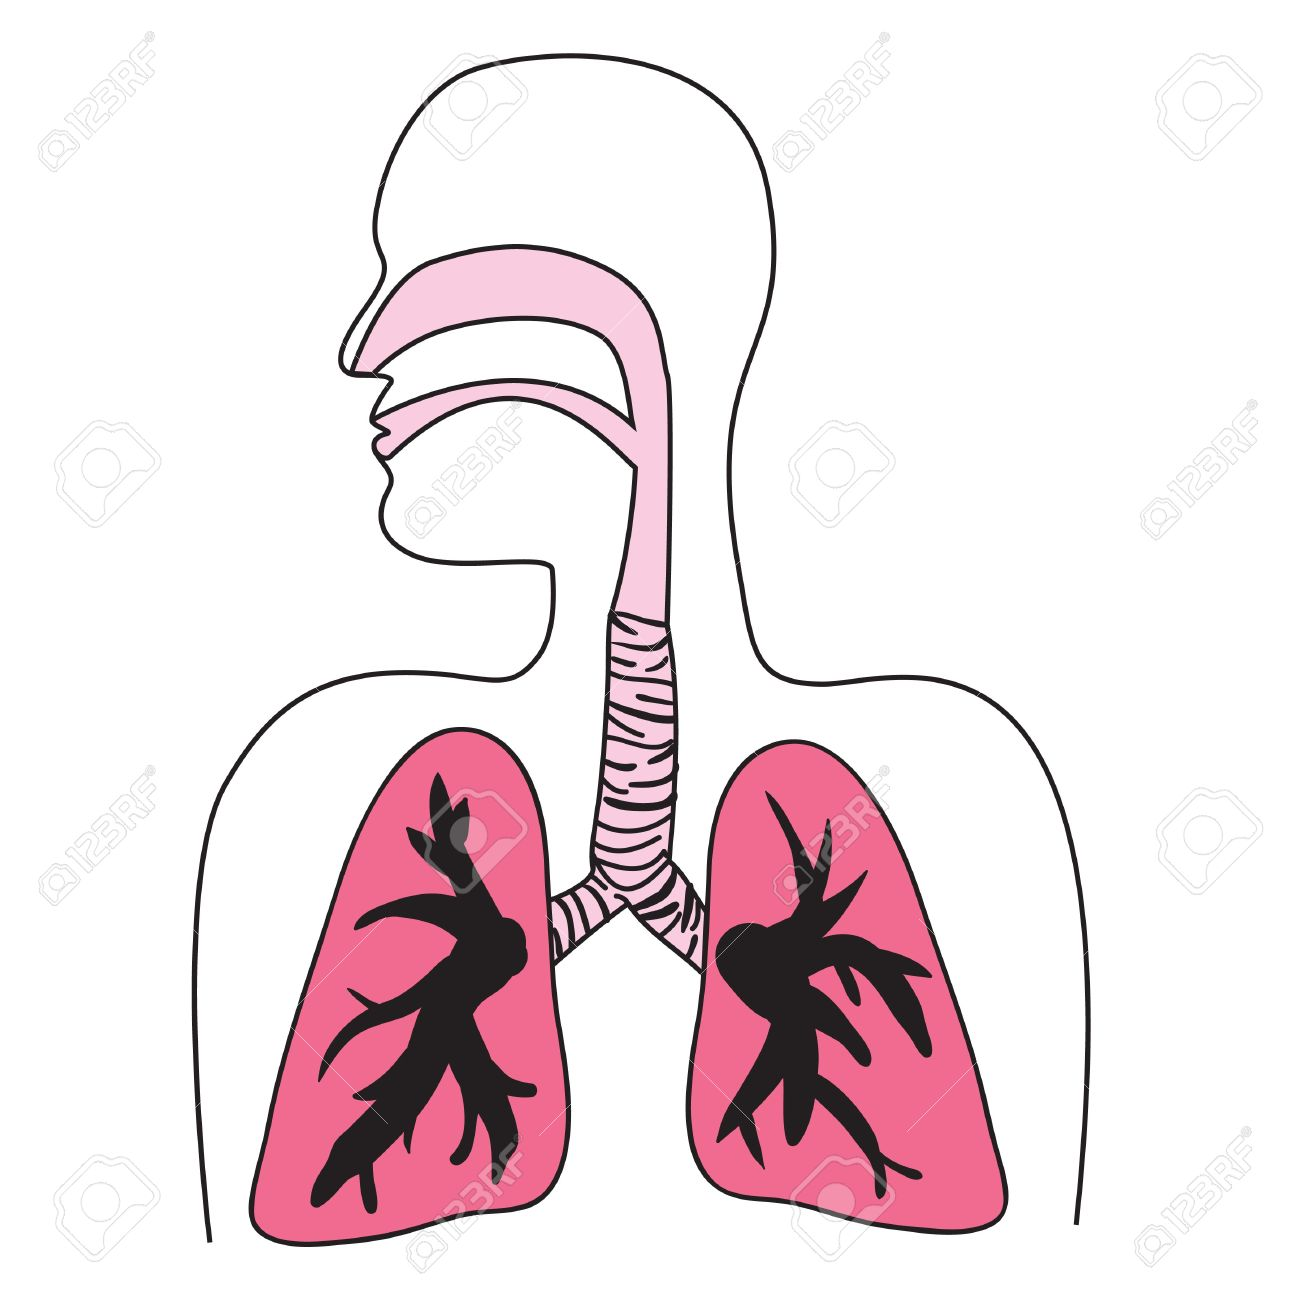 Drawing Of The Human Respiratory System Royalty Free Cliparts Vectors And Stock Illustration Image 7054546